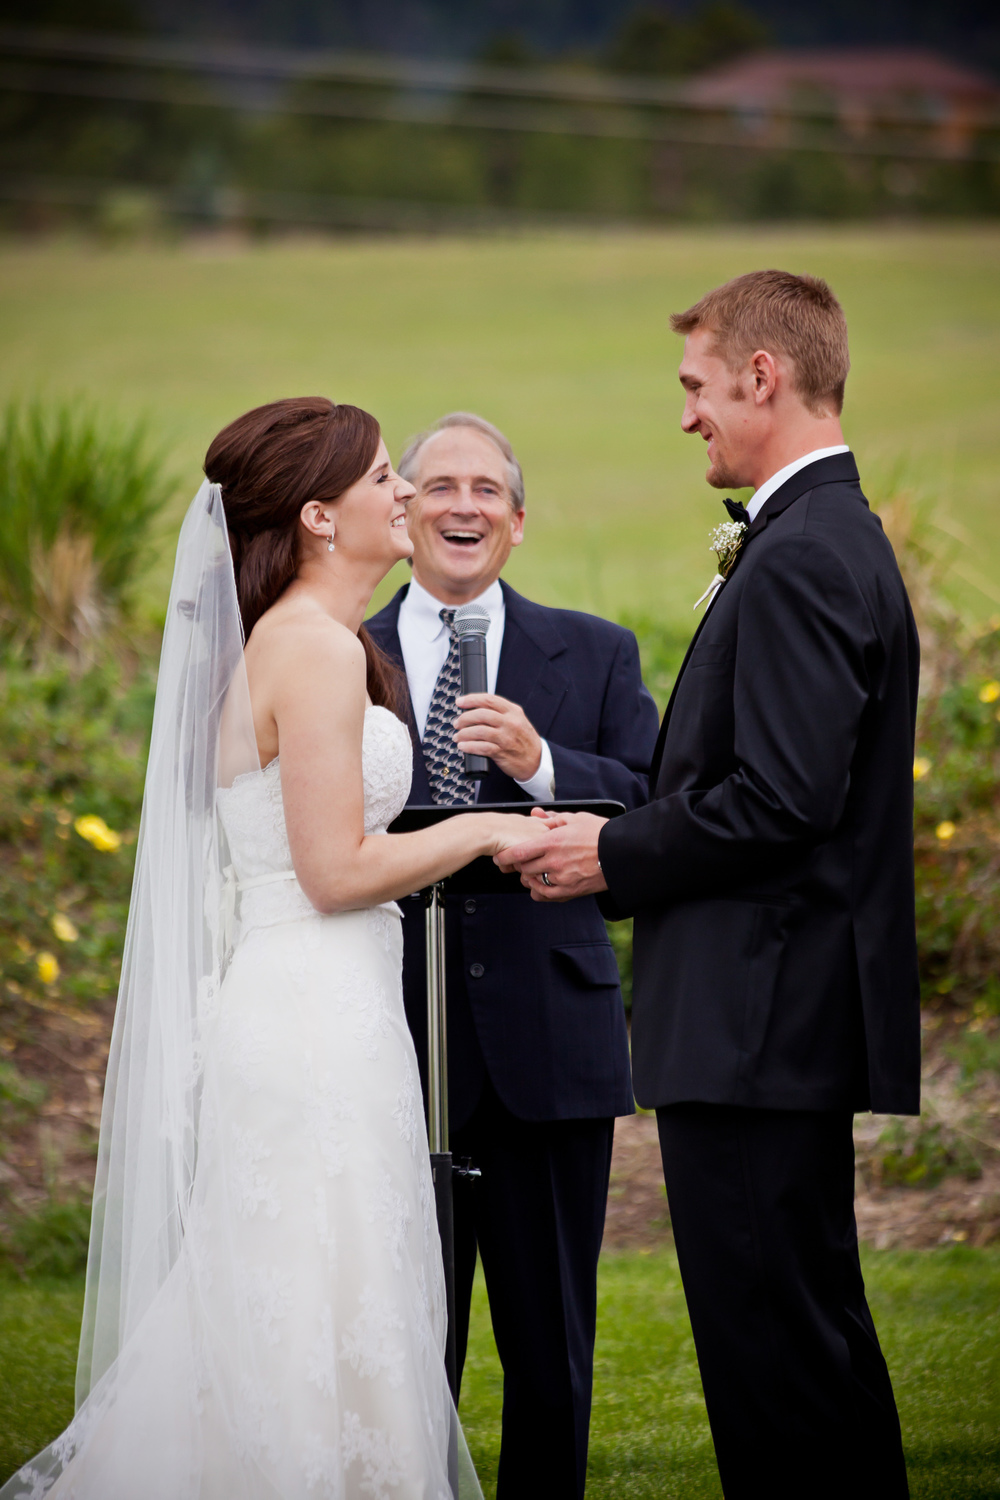 Crooked_Willow_Farms_Wedding_037.JPG